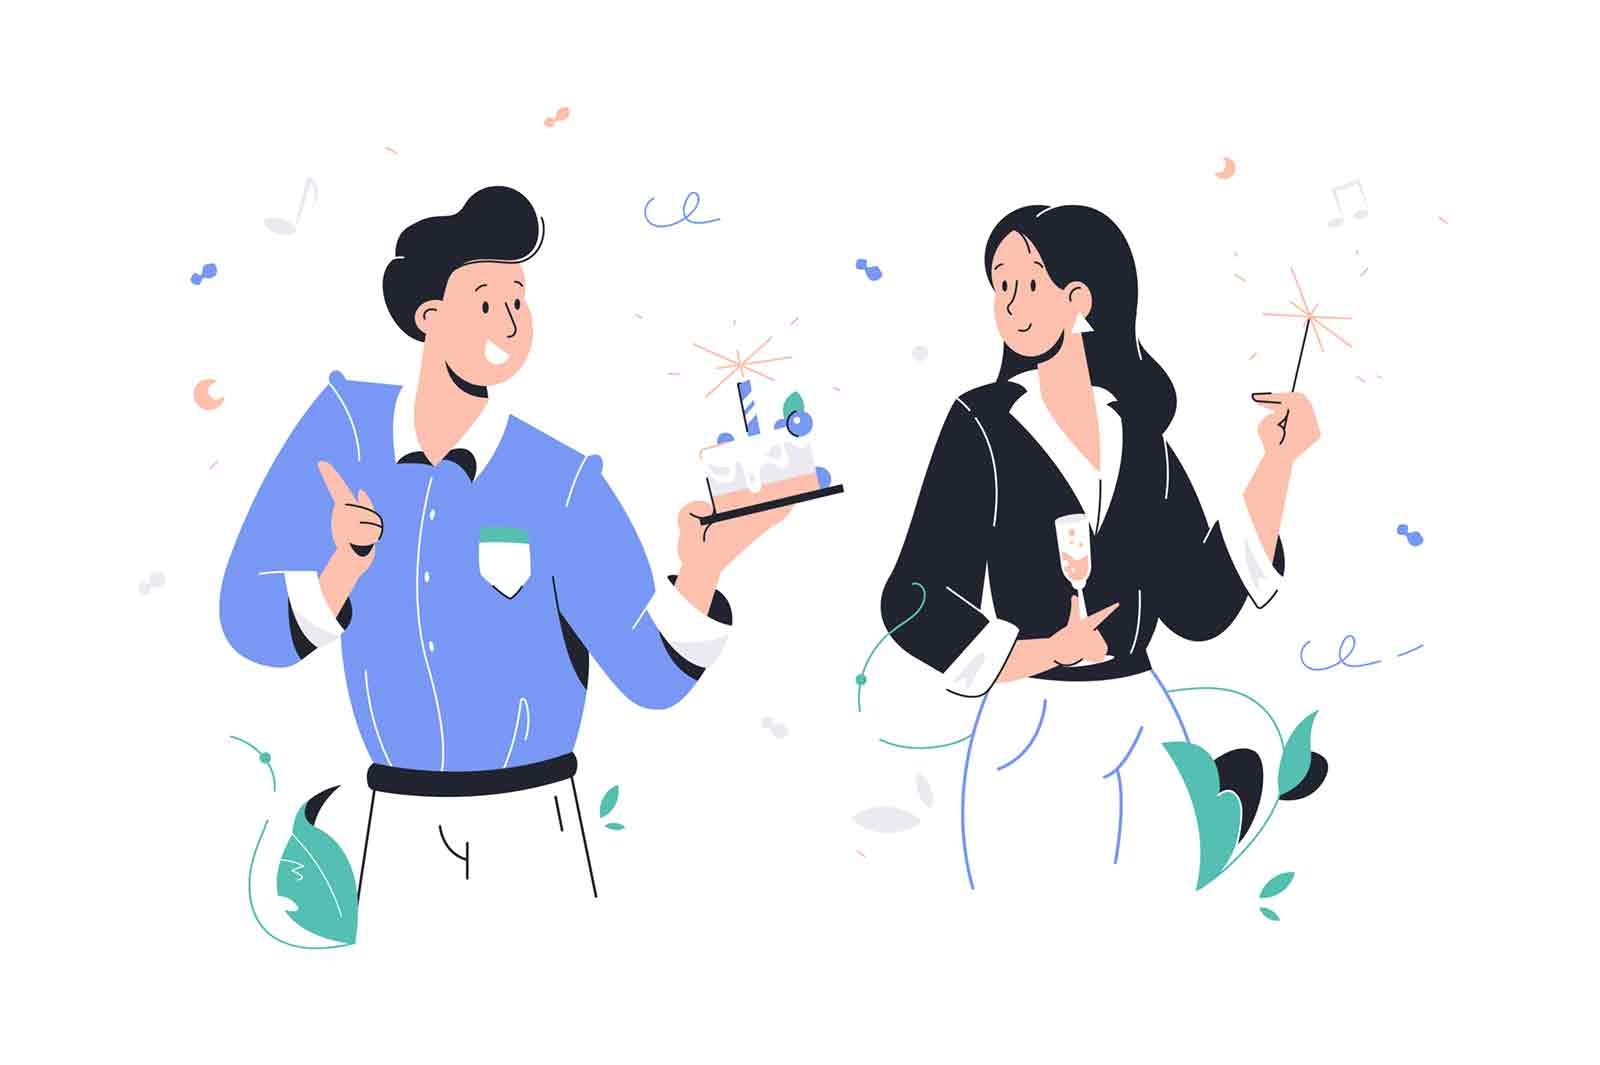 Smiling handsome man congratulates happy woman at celebration. Concept businessman and businesswoman character eats cake with candle and sparkler. Vector illustration.